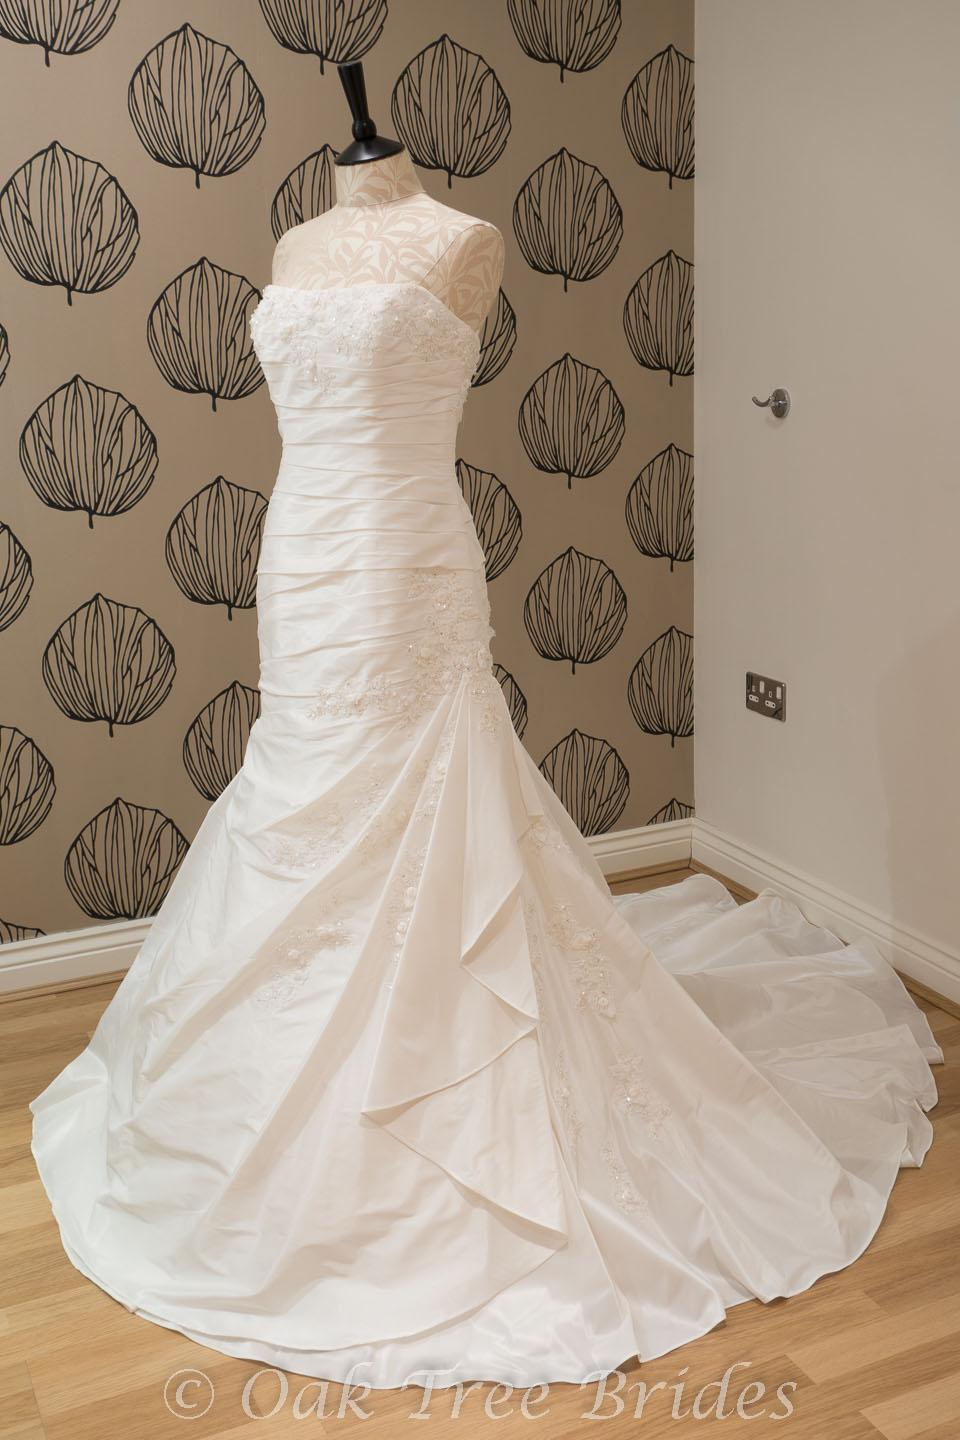 Second hand wedding gowns for sale uk flower girl dresses for 2nd hand designer wedding dresses